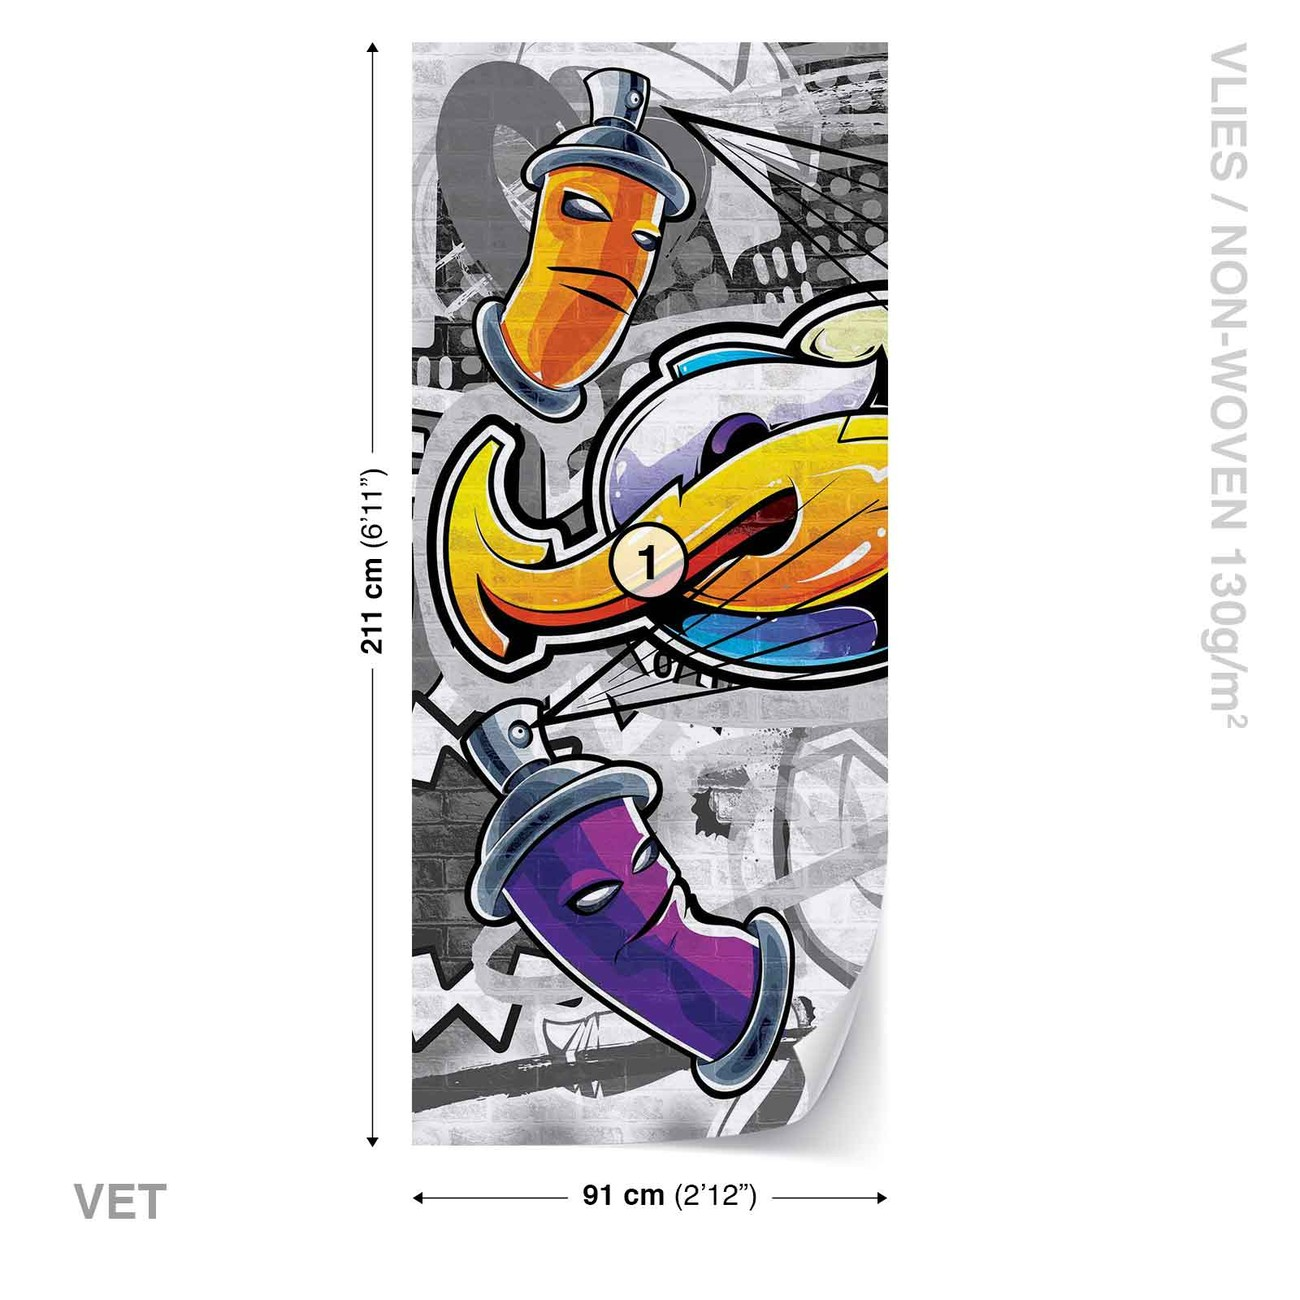 Walltastic Graffiti Wallpaper Mural: Graffiti Street Art Wall Paper Mural